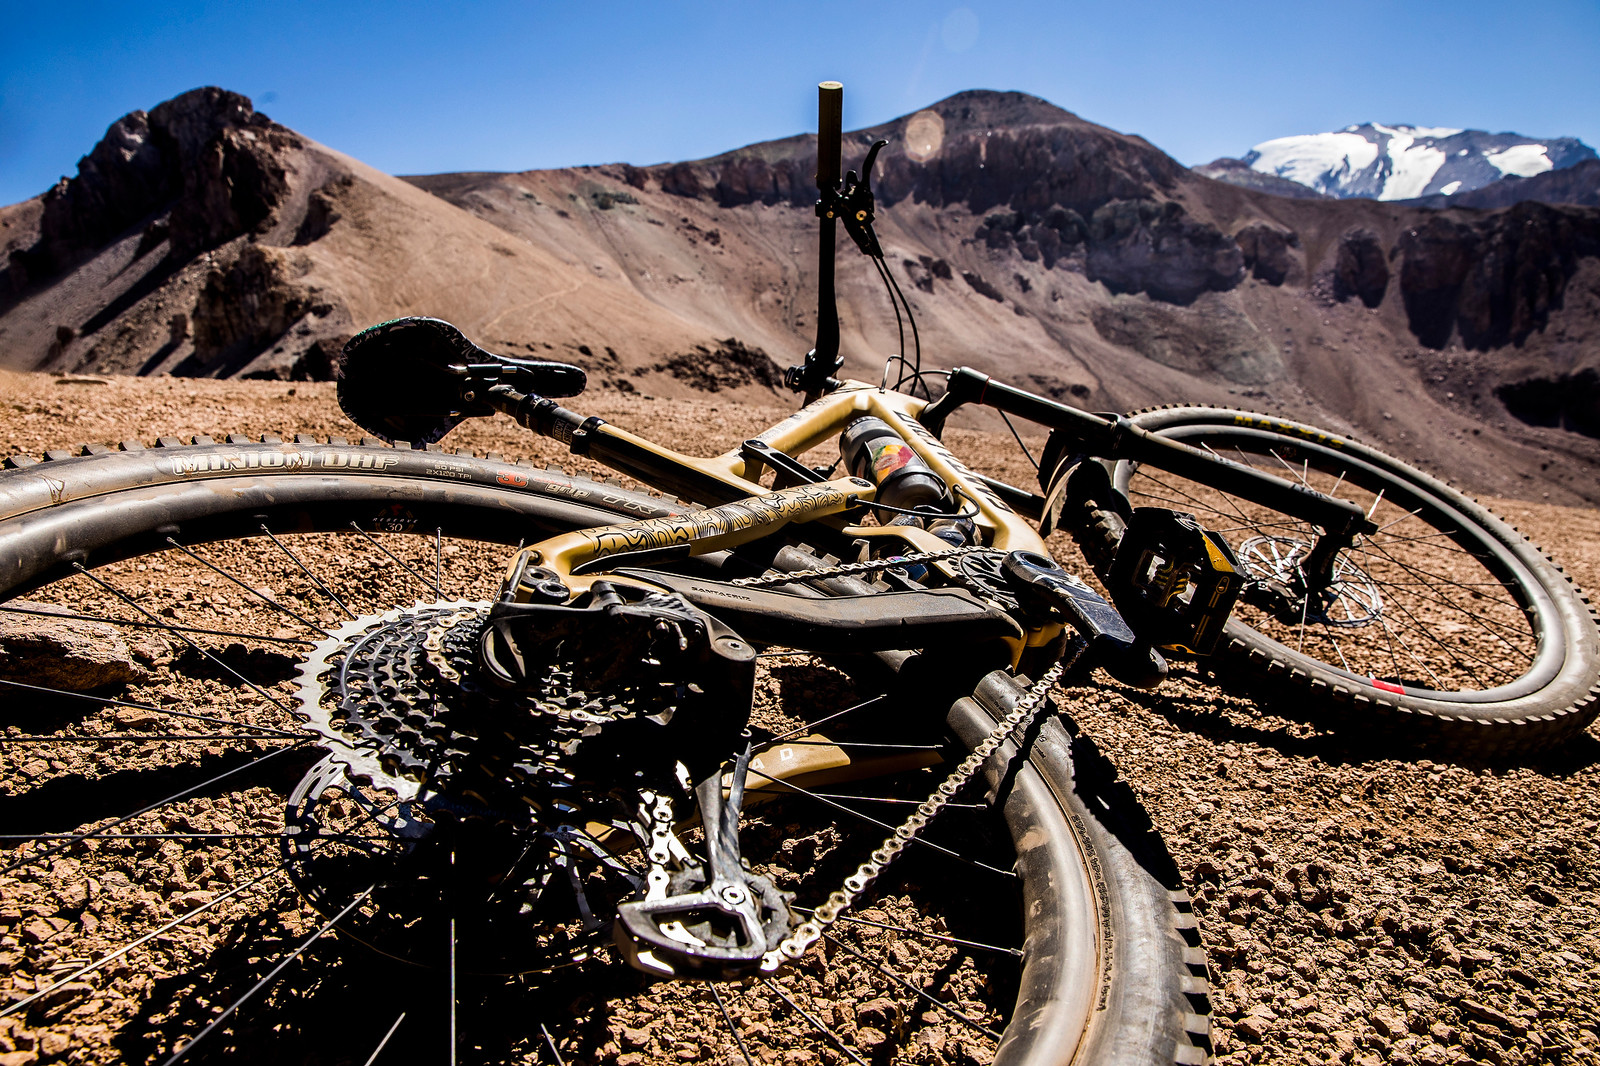 Sven's Santa Cruz Nomad 4 at the 2018 EWS La Parva - PIT BITS AND BIKES - Enduro World Series, Chile - Mountain Biking Pictures - Vital MTB